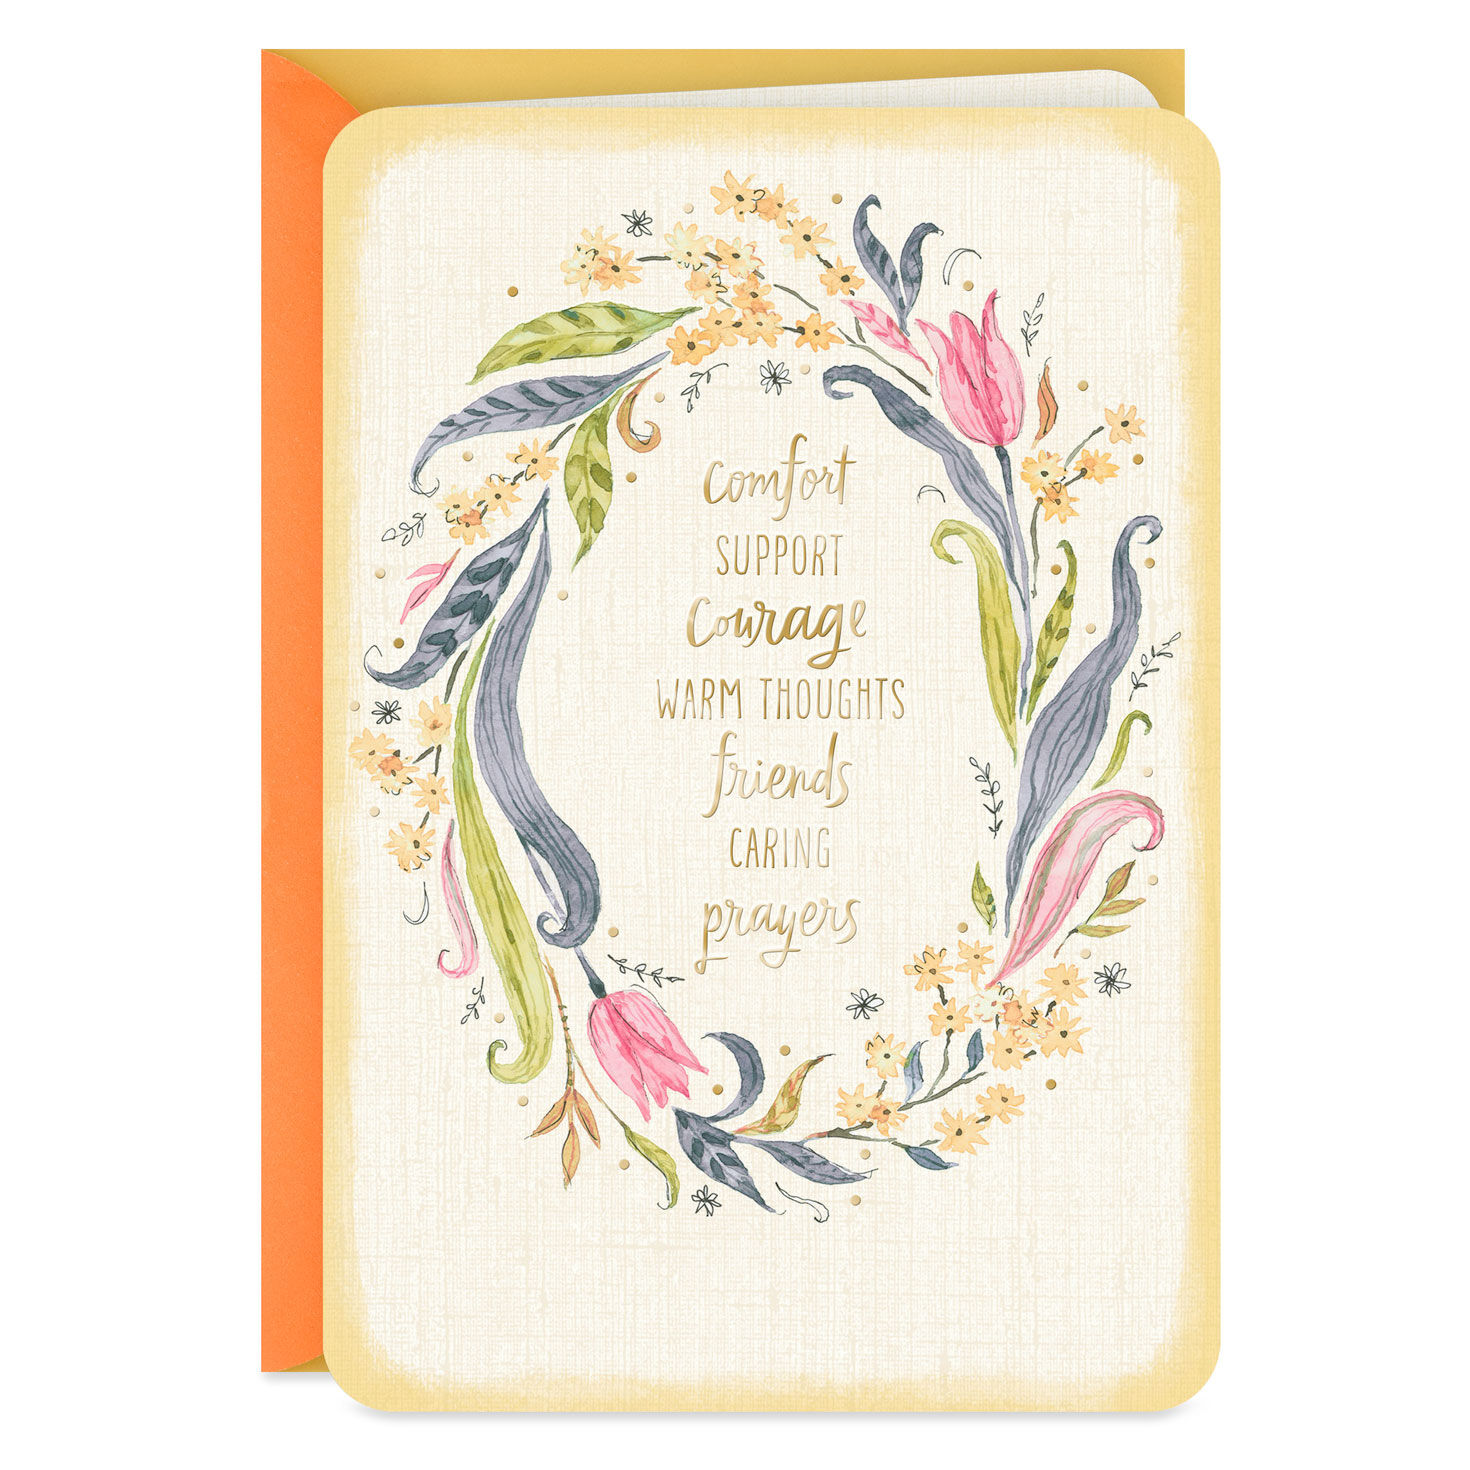 Thinking of You Card Serious illness Cancer treatment Get Well Soon Hope